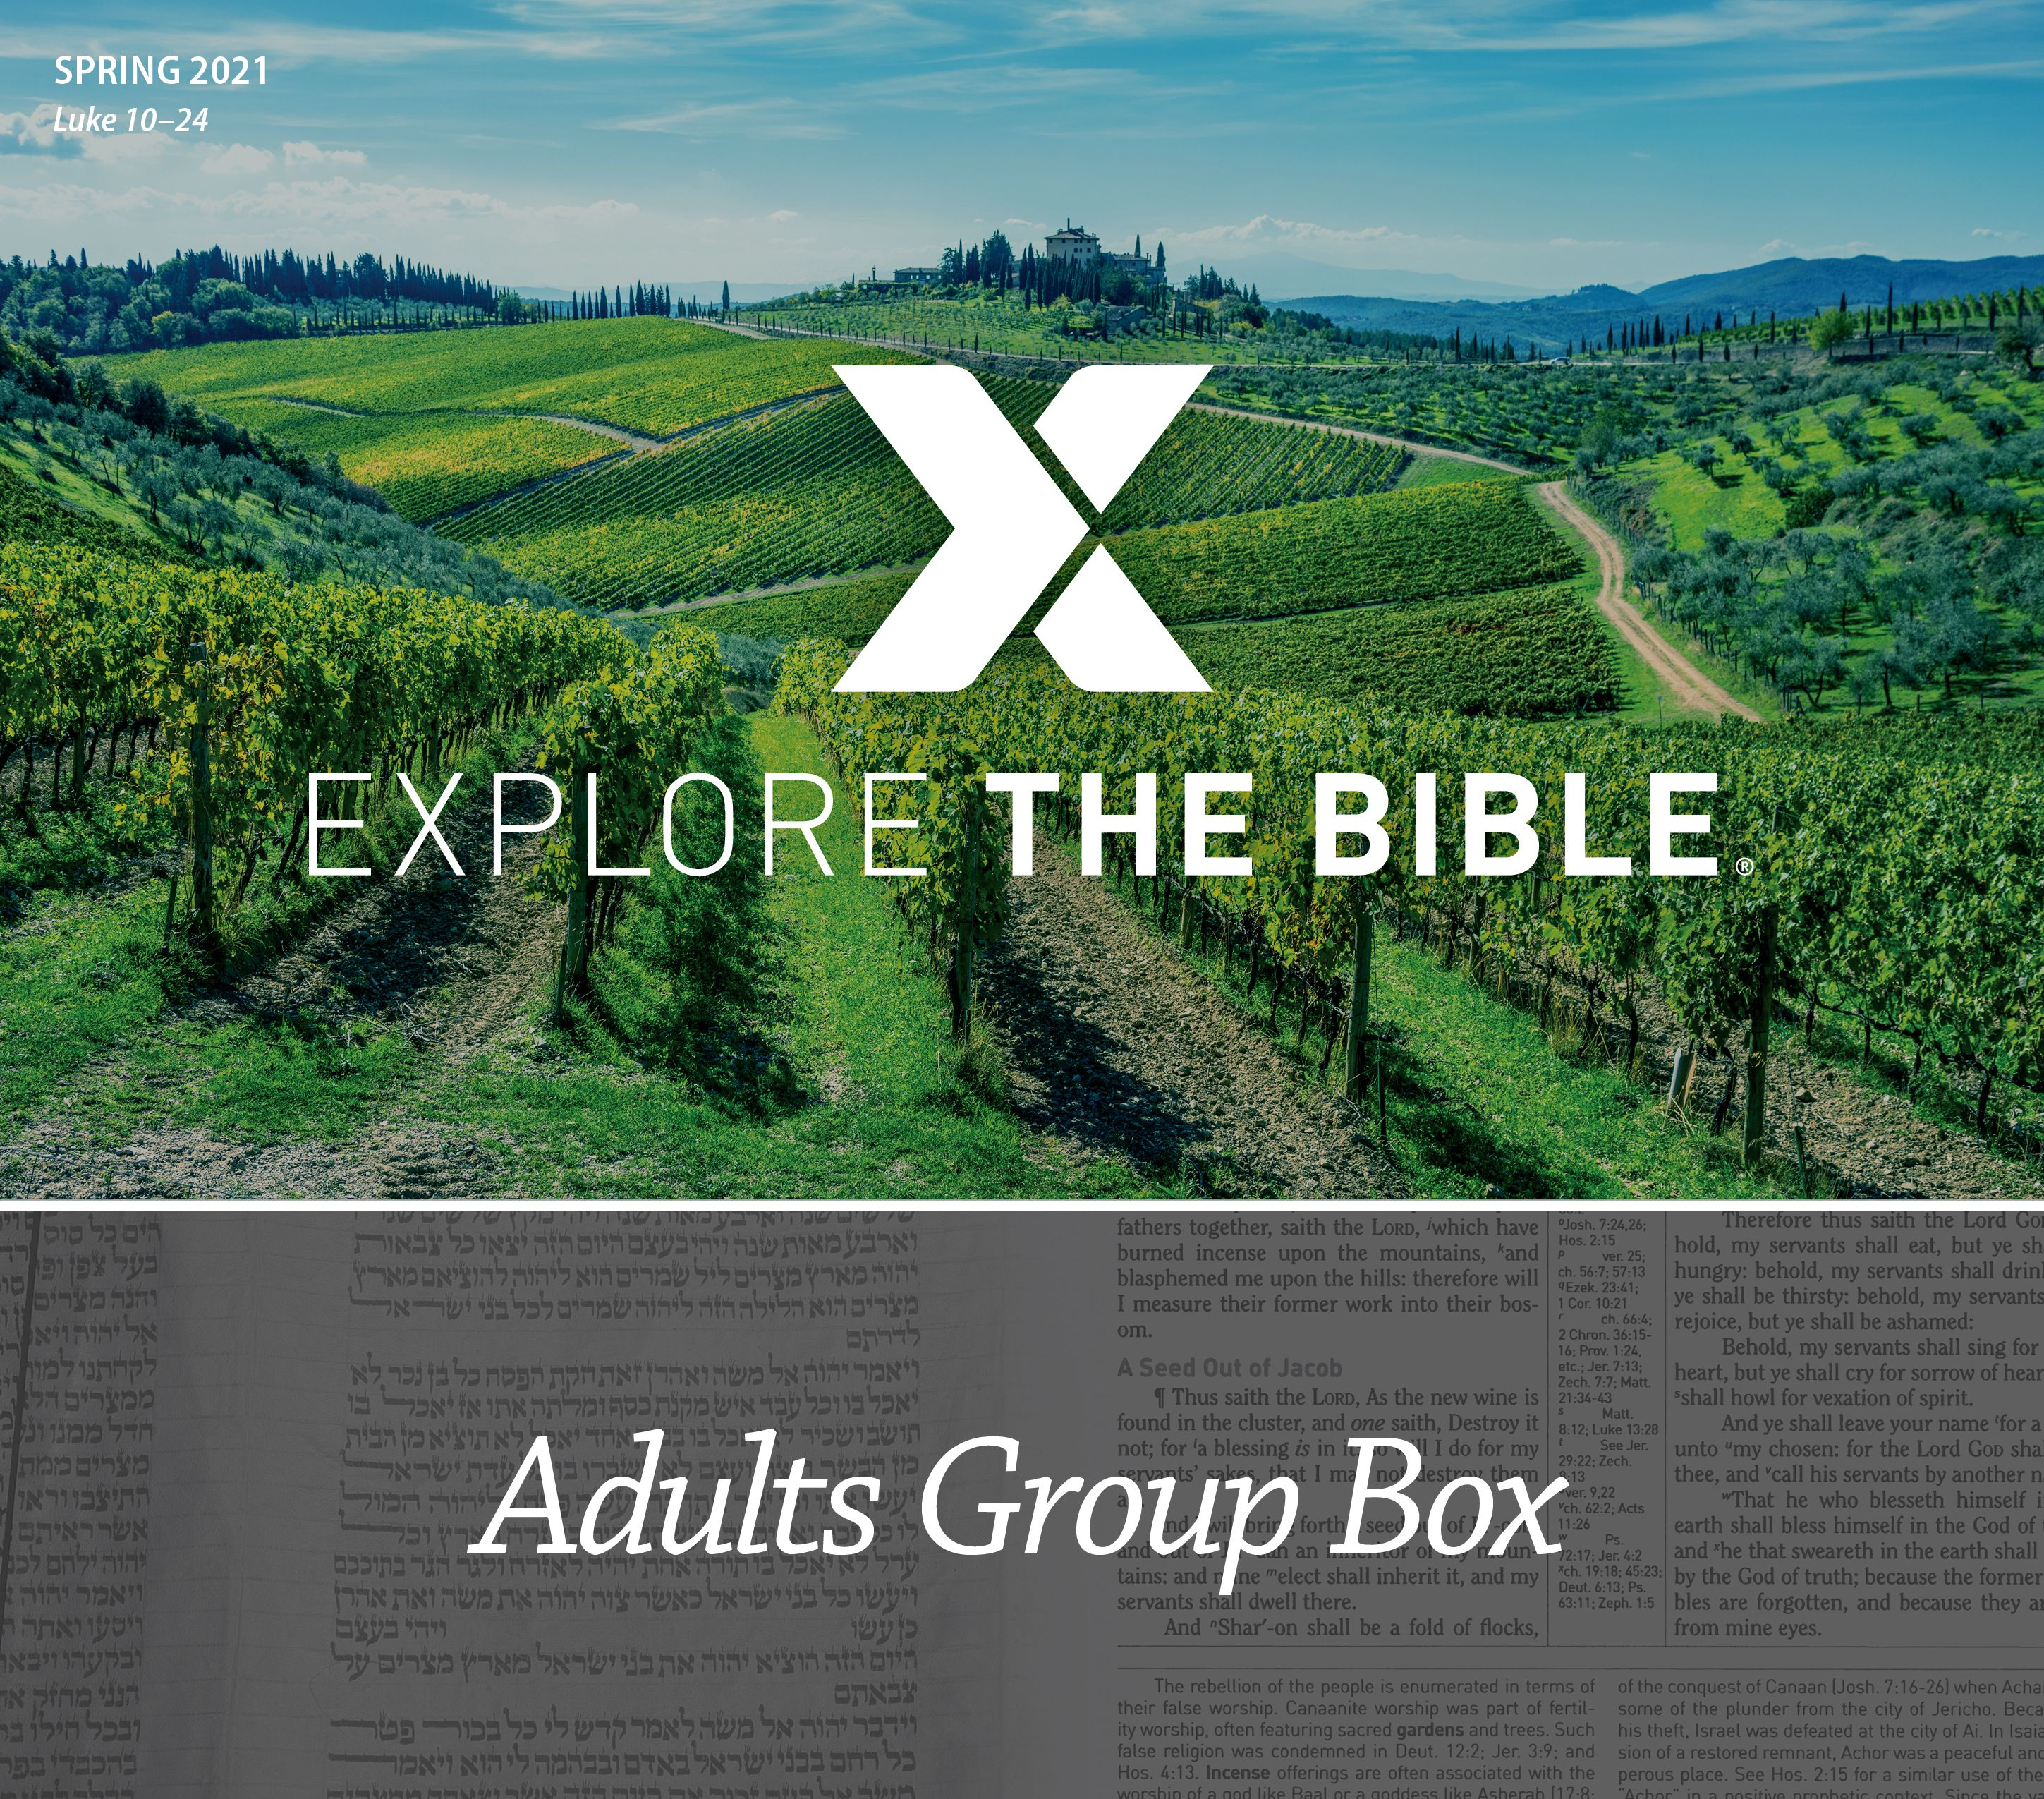 Explore the Bible Adult Group Box